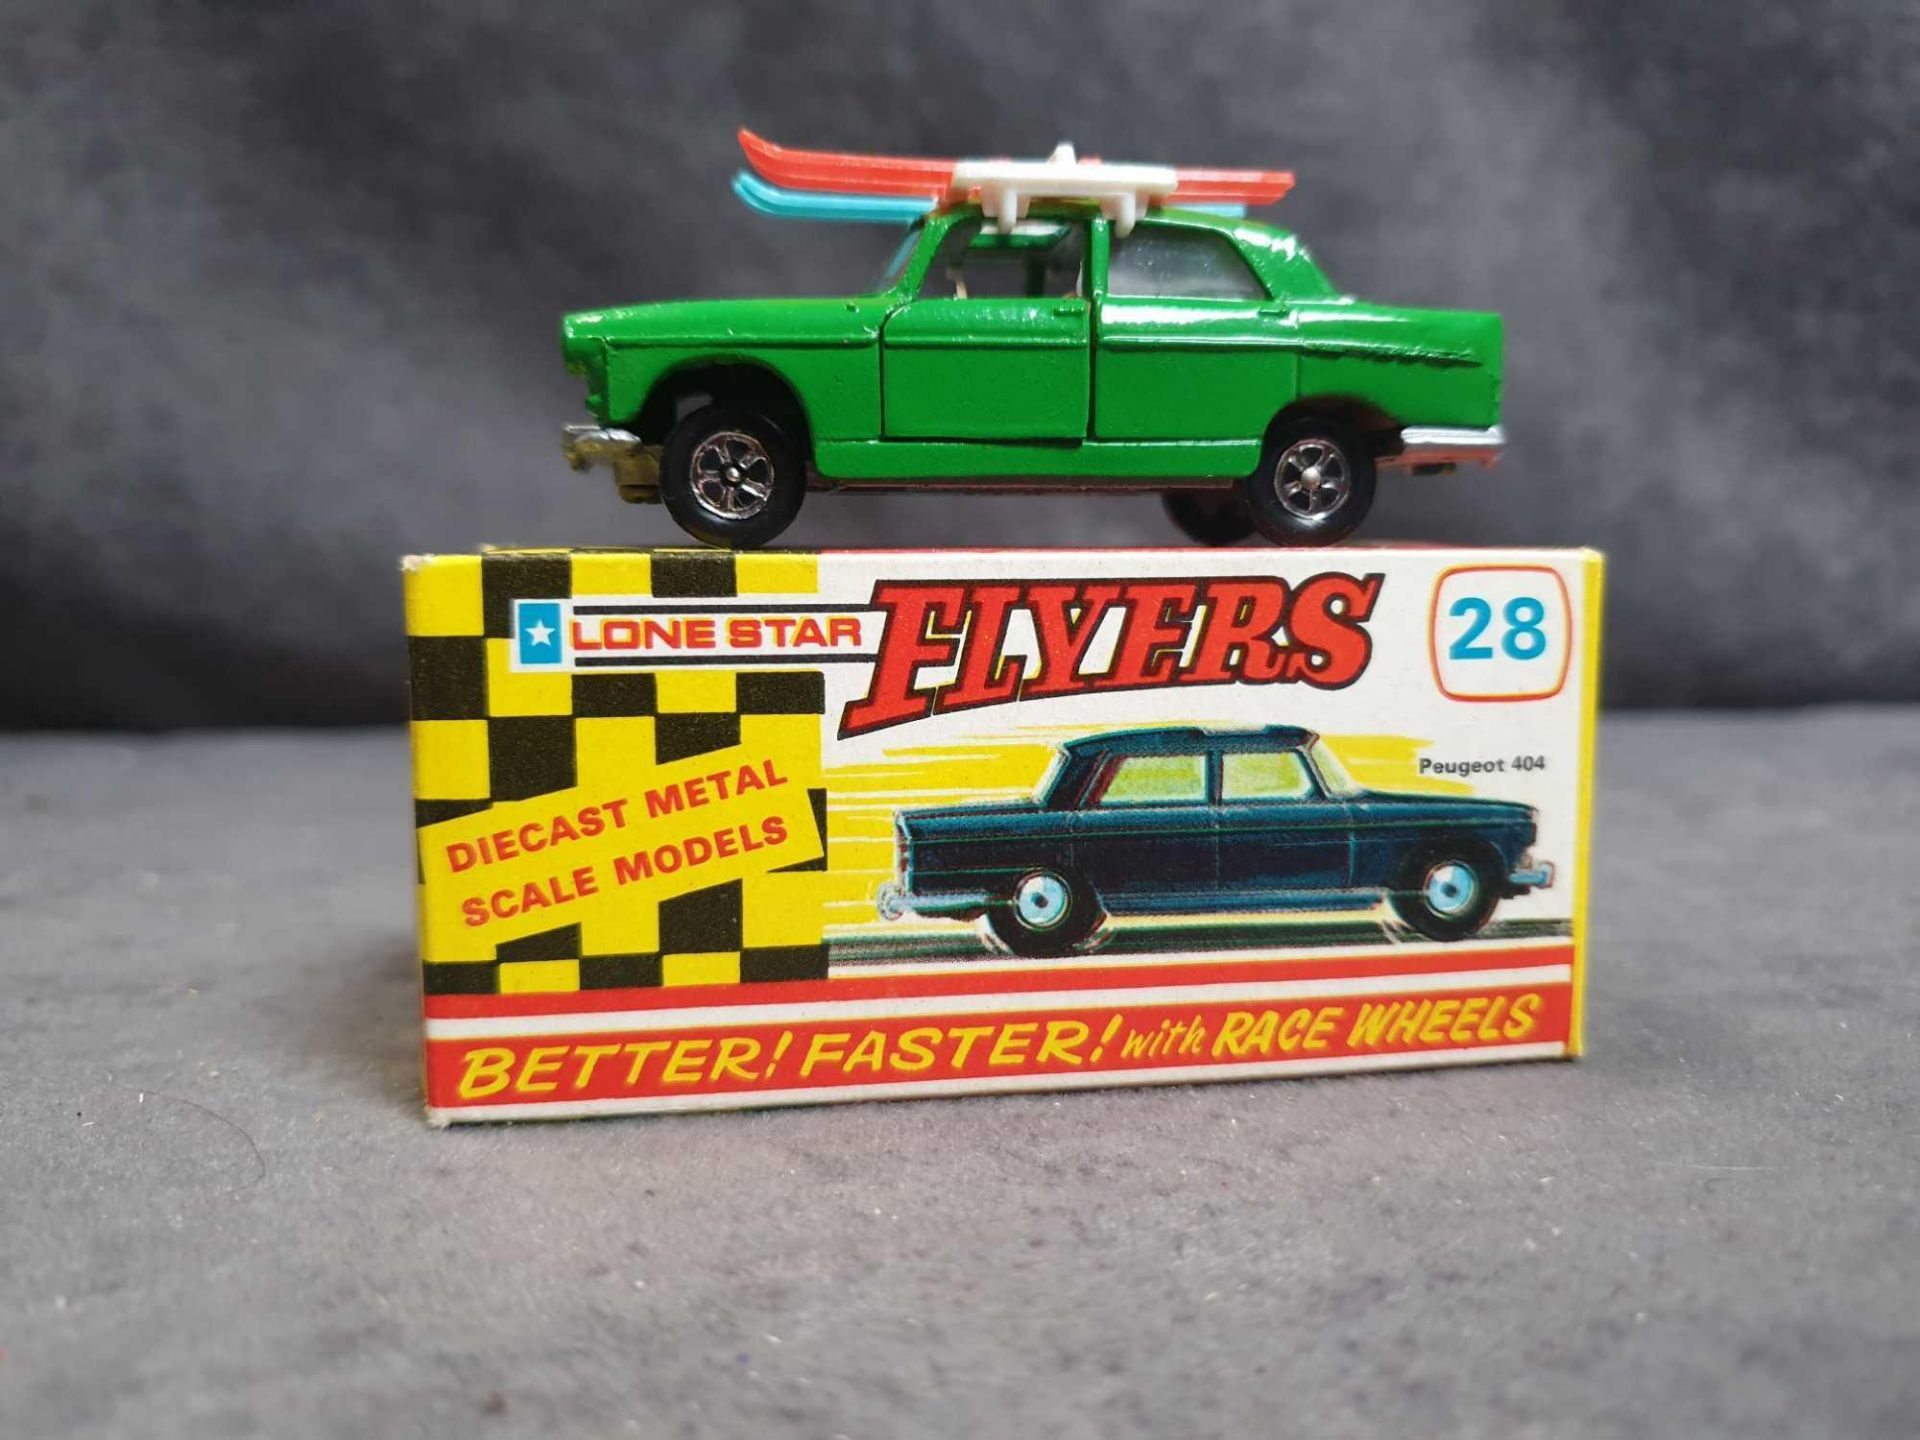 Mint Lone Star Flyers #28 Peugeot 404 Green With Skis Diecast Vehicle With Box